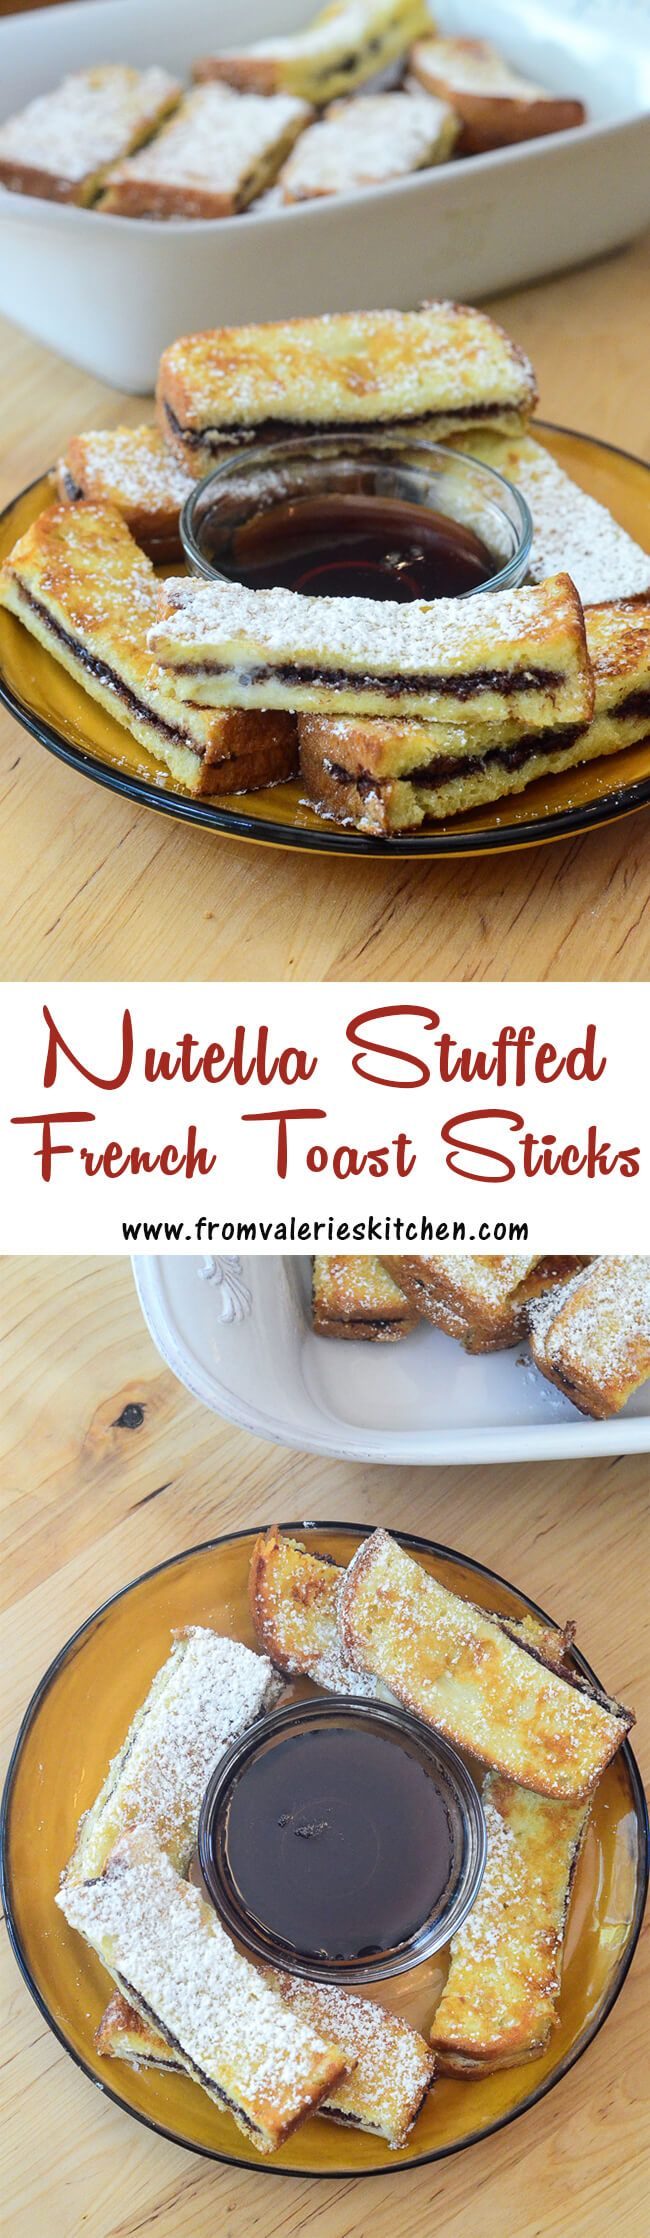 Nutella Stuffed French Toast Sticks